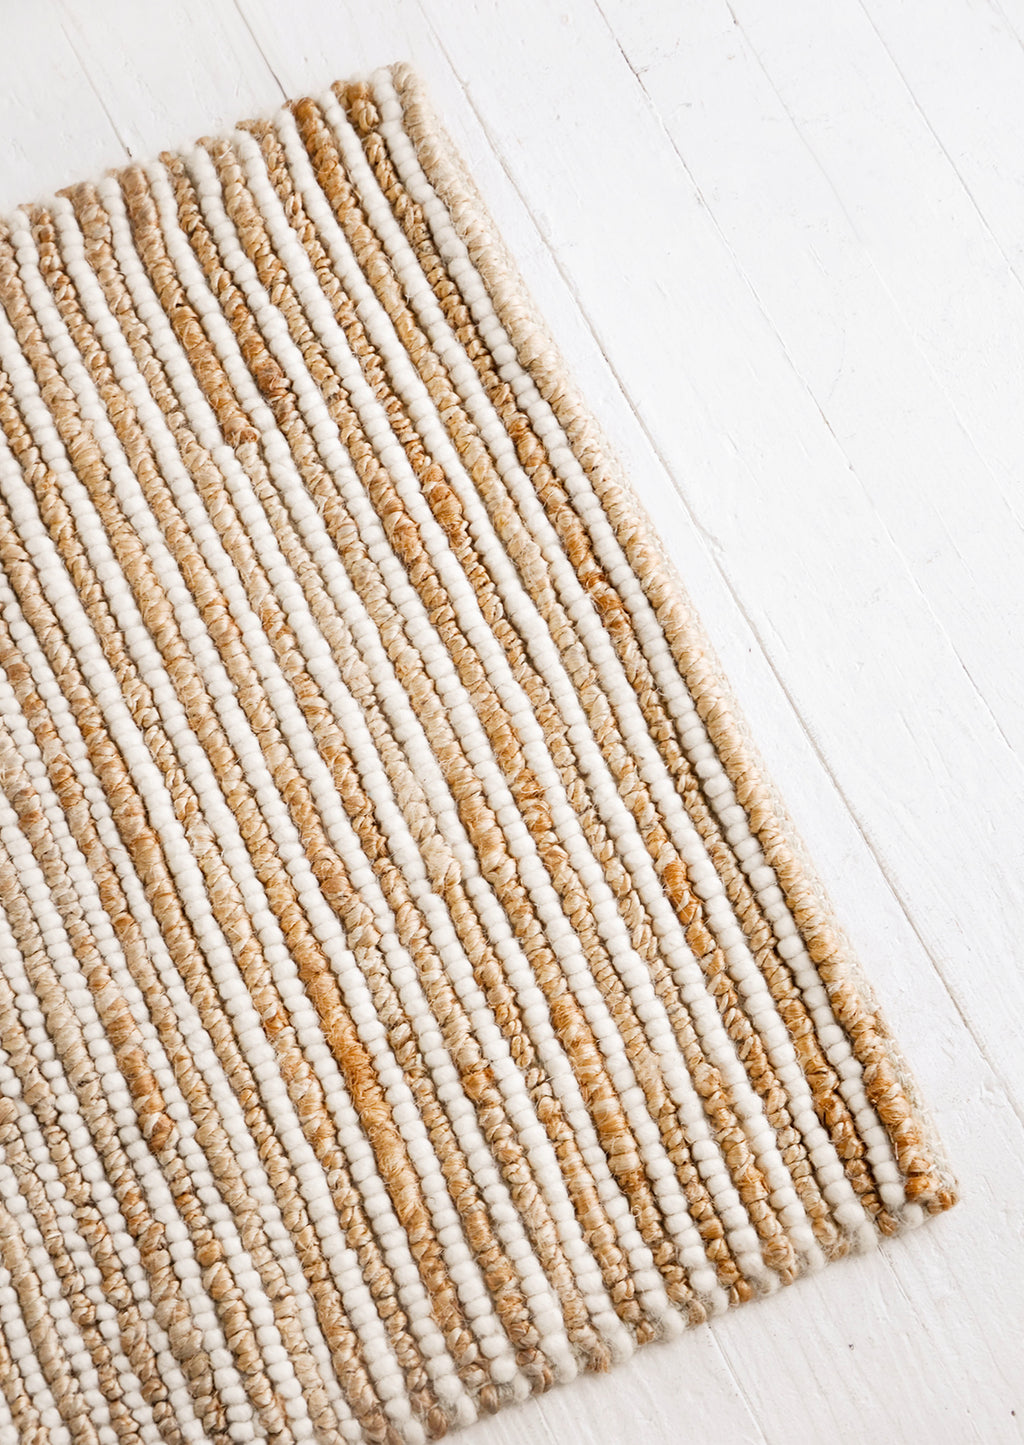 1: Looped Wool Striped Jute Rug in  - LEIF